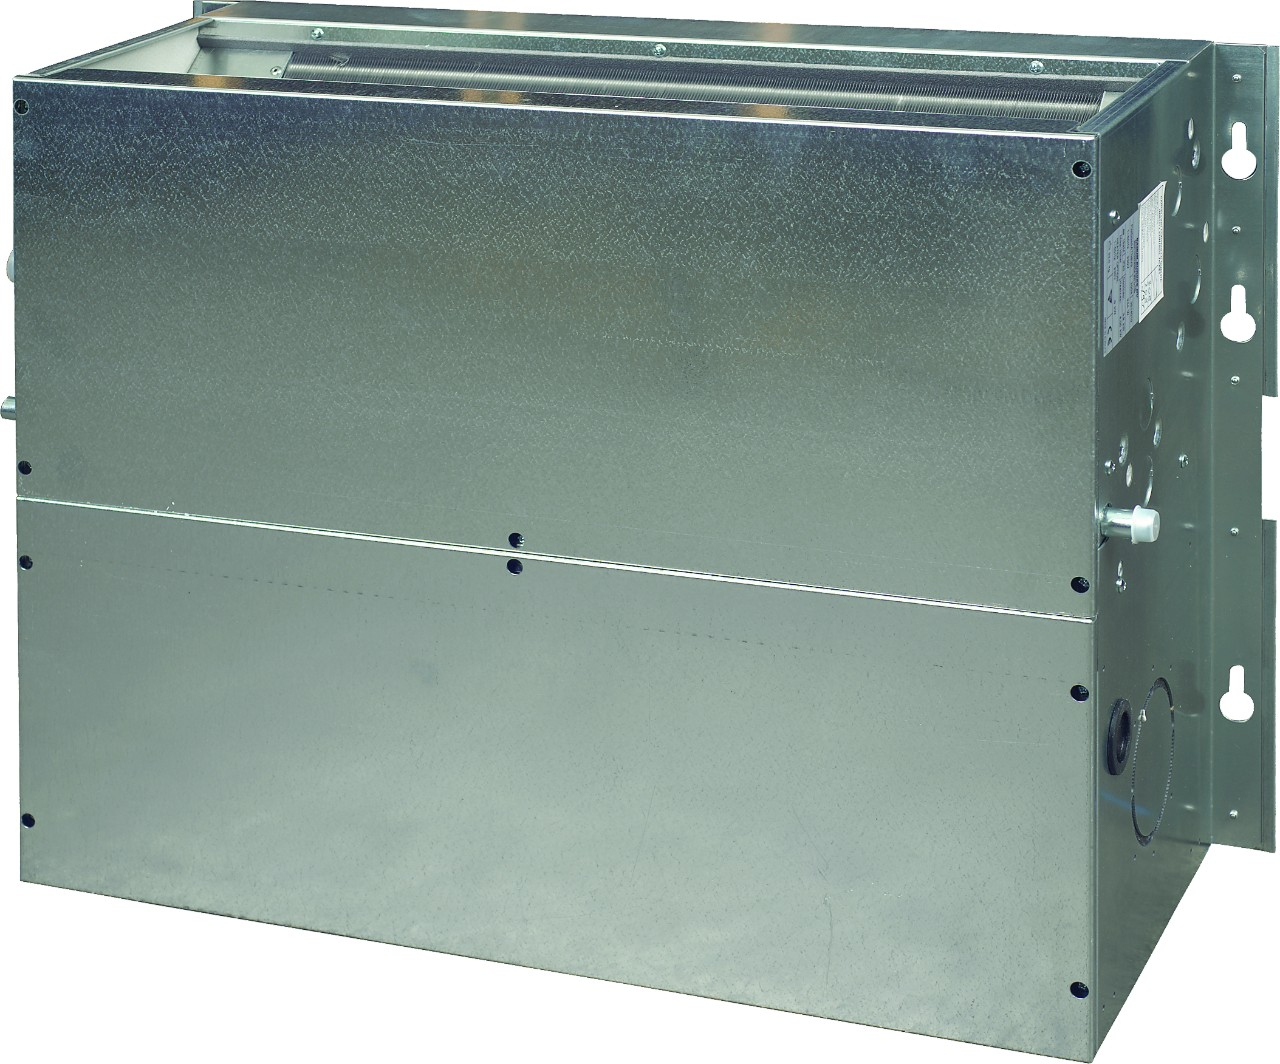 Daikin Fwn Af 4 Pipe High Static Duct Fan Coil Unit 3 8kw